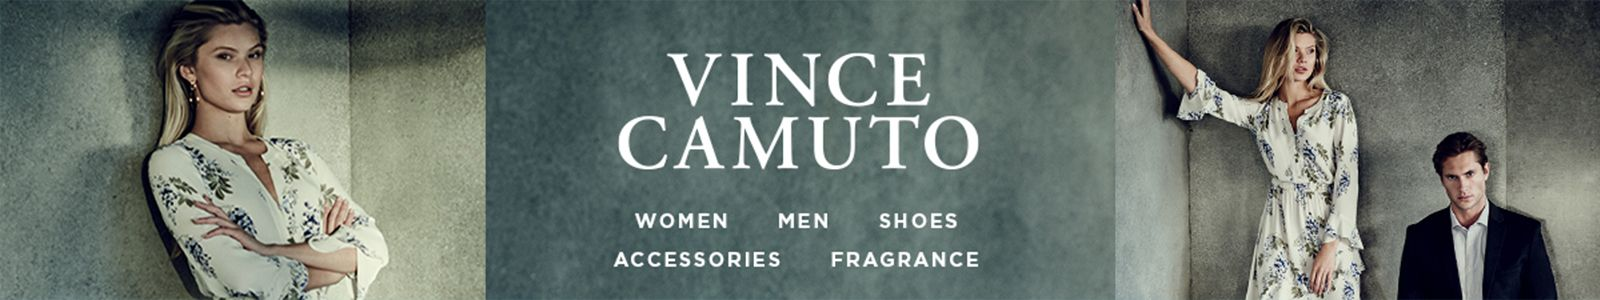 Vince Camuto, Women, Men, Shoes, Accessories, Fragrance